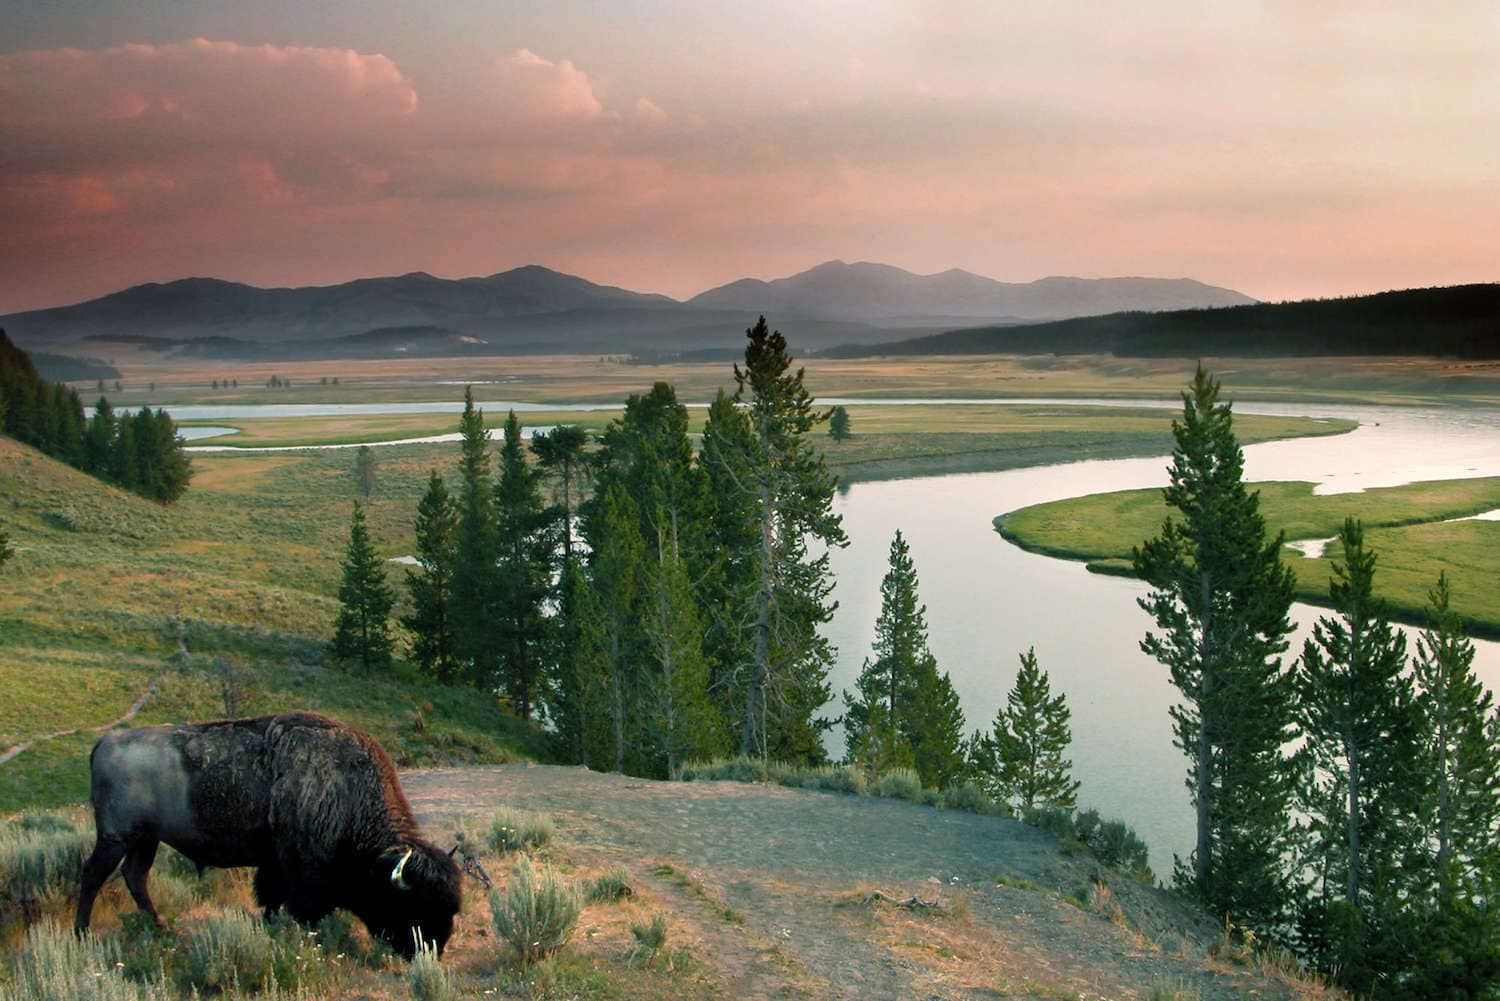 The Best Places to Stay In Yellowstone National Park